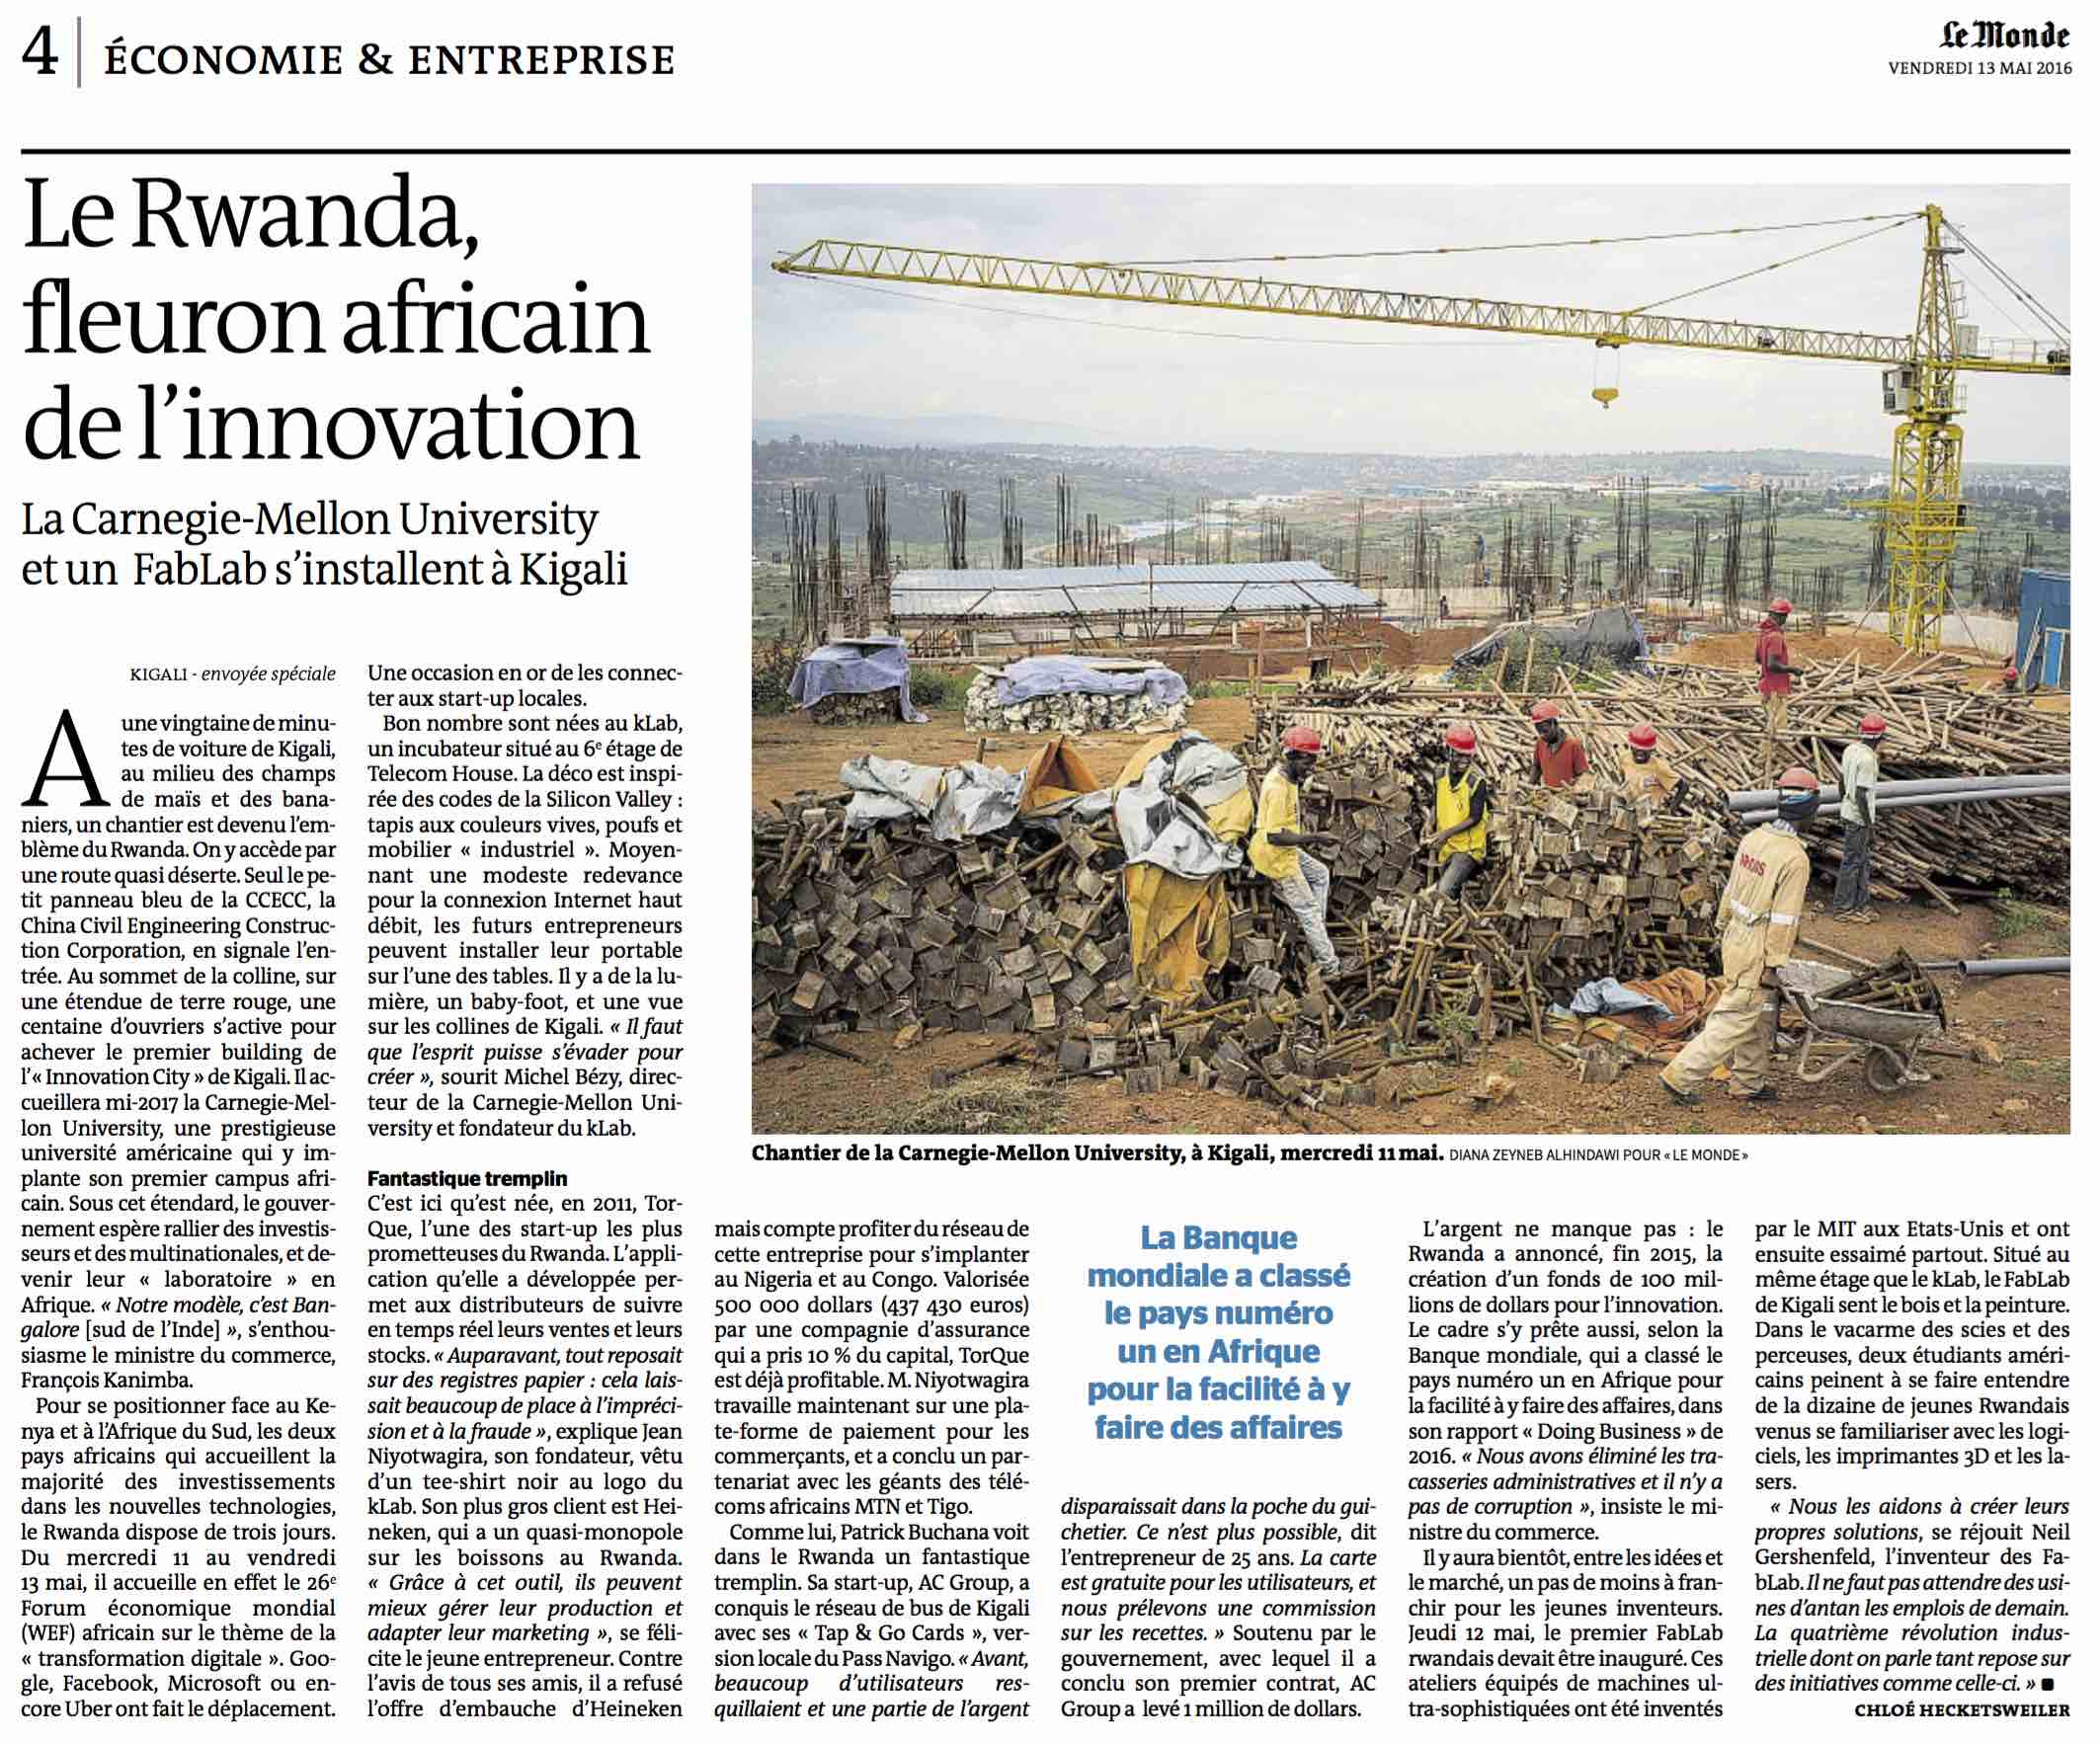 Le Rwanda: fleuron africaine de l'innovation   (Rwanda: the source of african innovation)  | Le Monde, Eco & Enterprise, page 4, 13 May, 2016